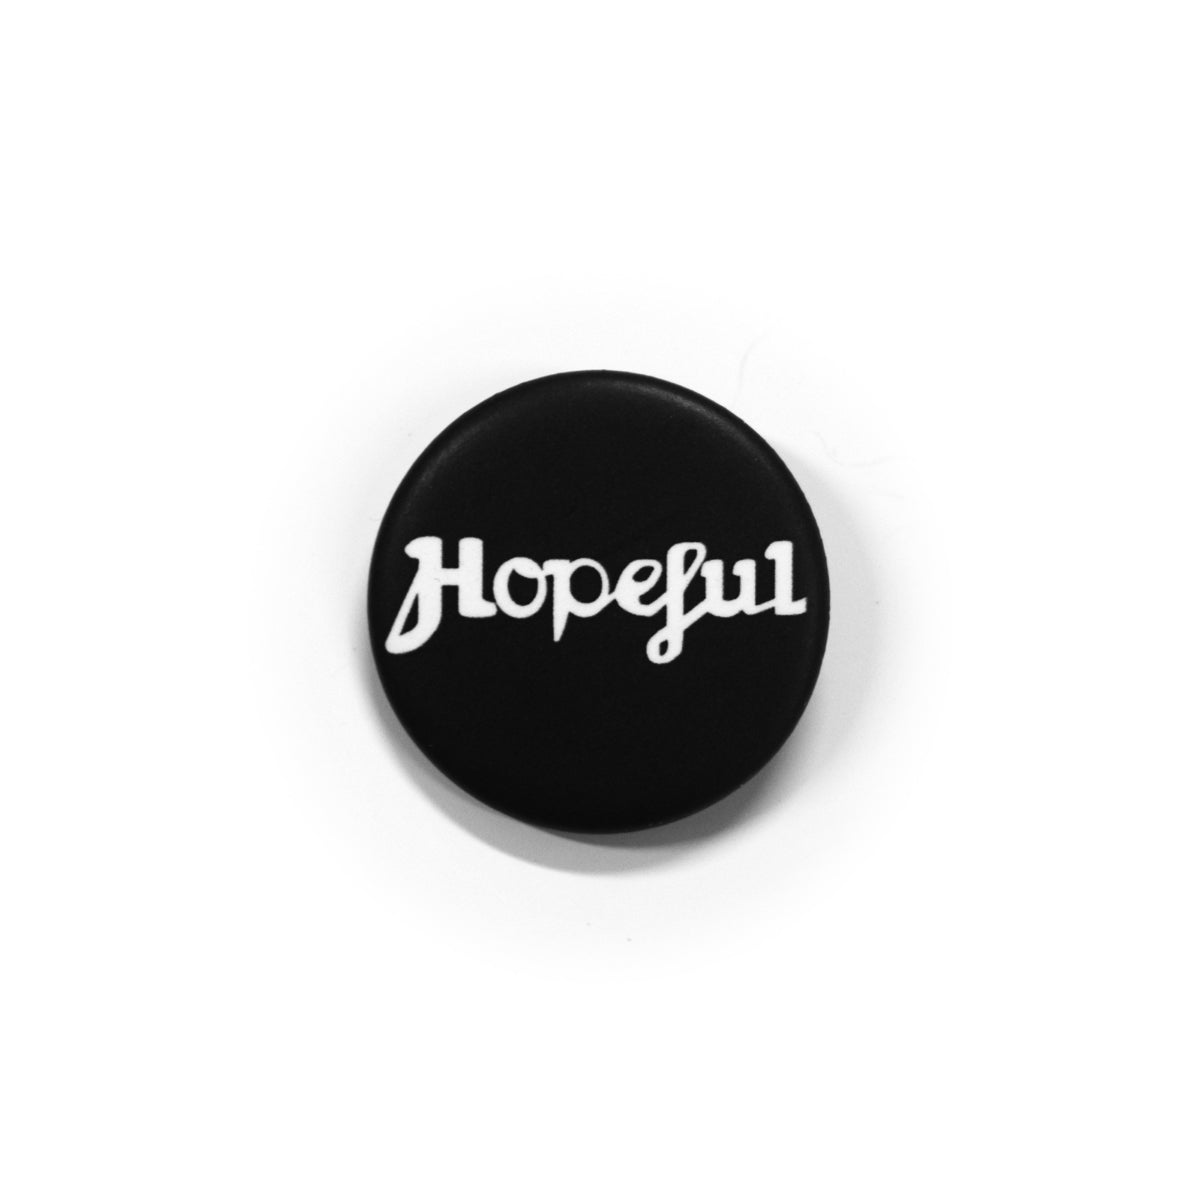 Hopeful Pin Badge